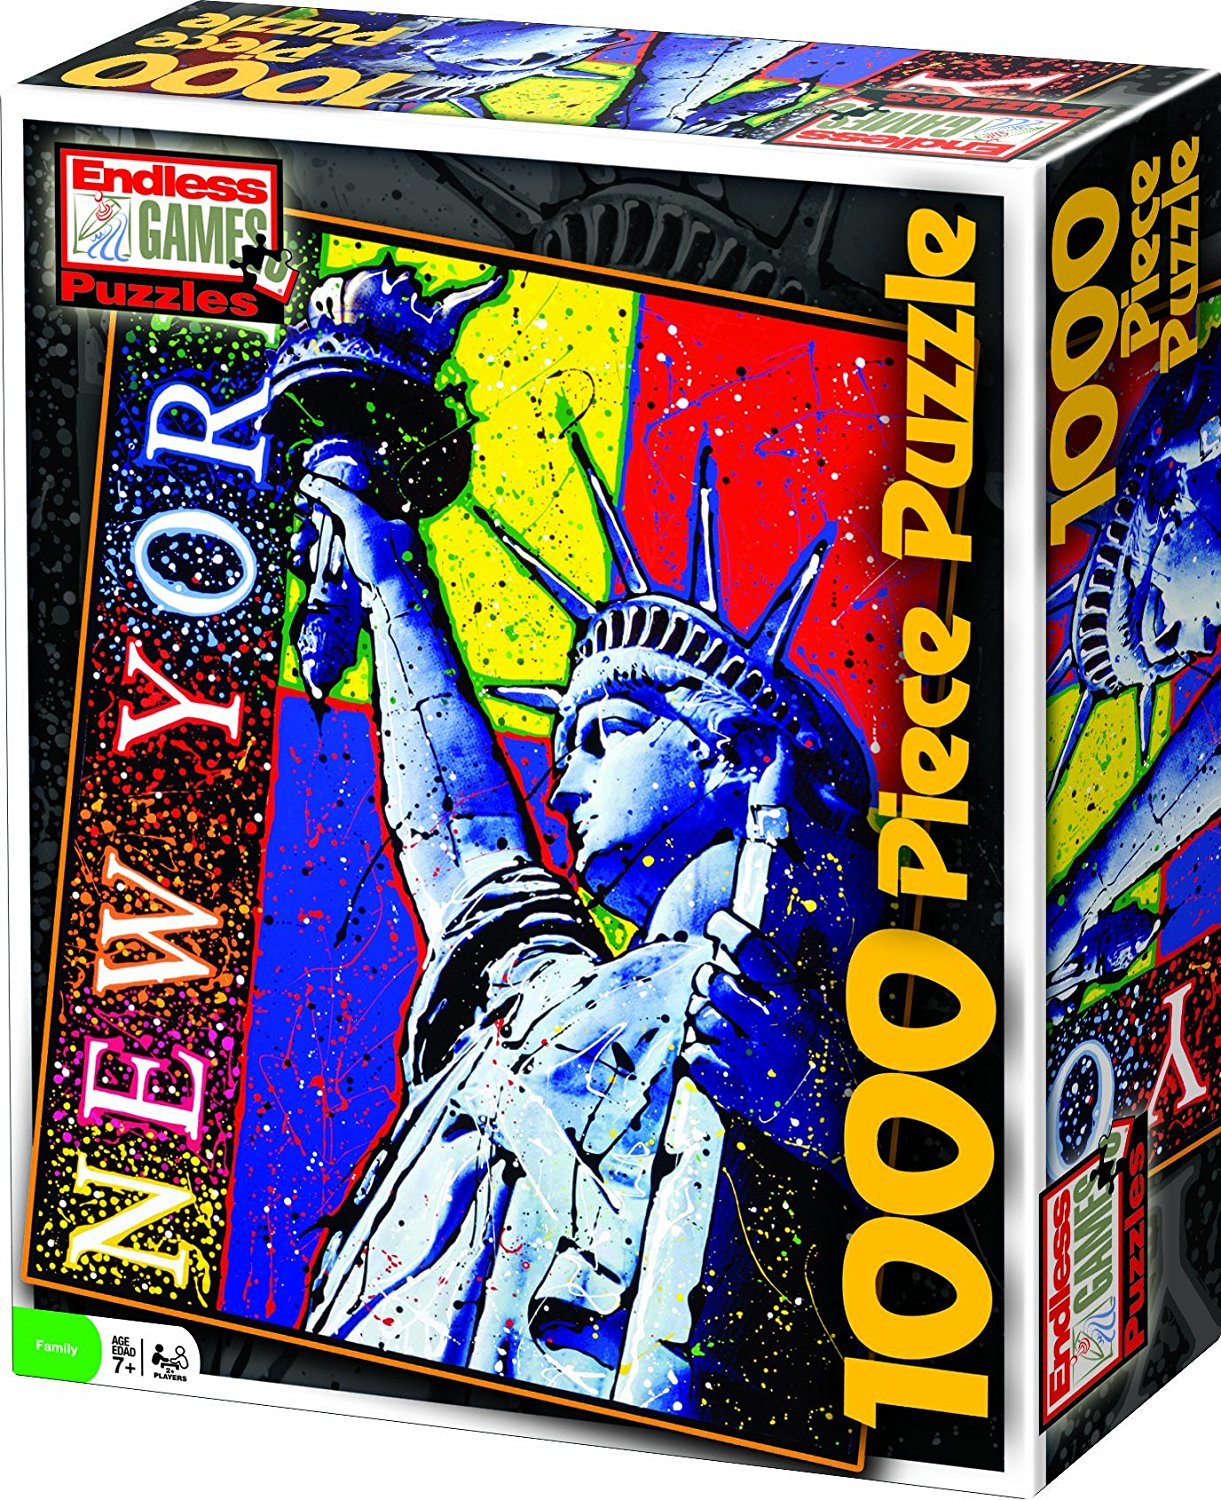 Holton Liberty Drizzle Art Puzzle, 1000 Piece, High quality puzzle By Endless Games by